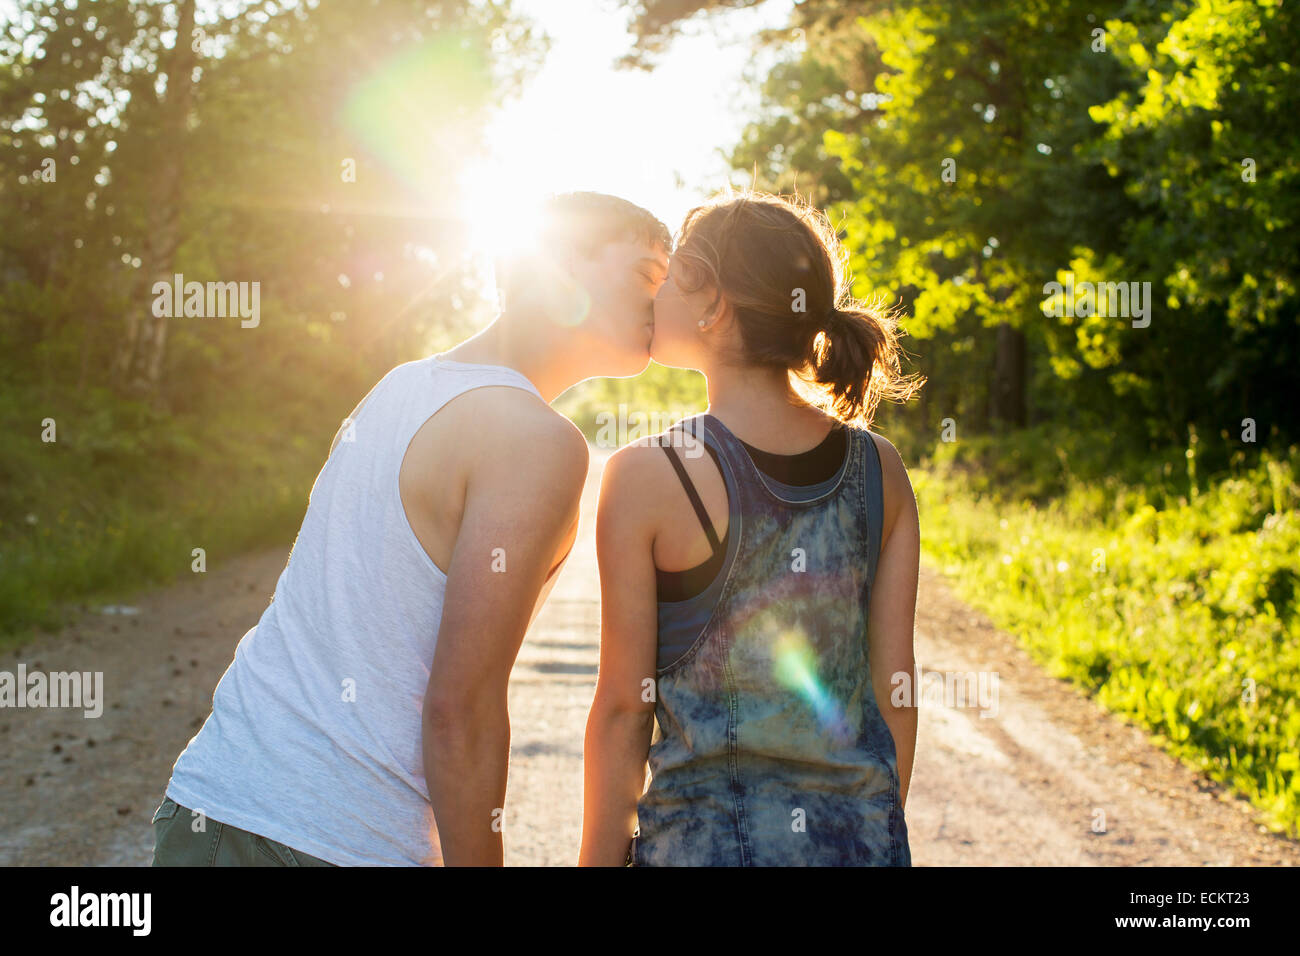 Rear view of couple kissing on dirt road against bright sun - Stock Image